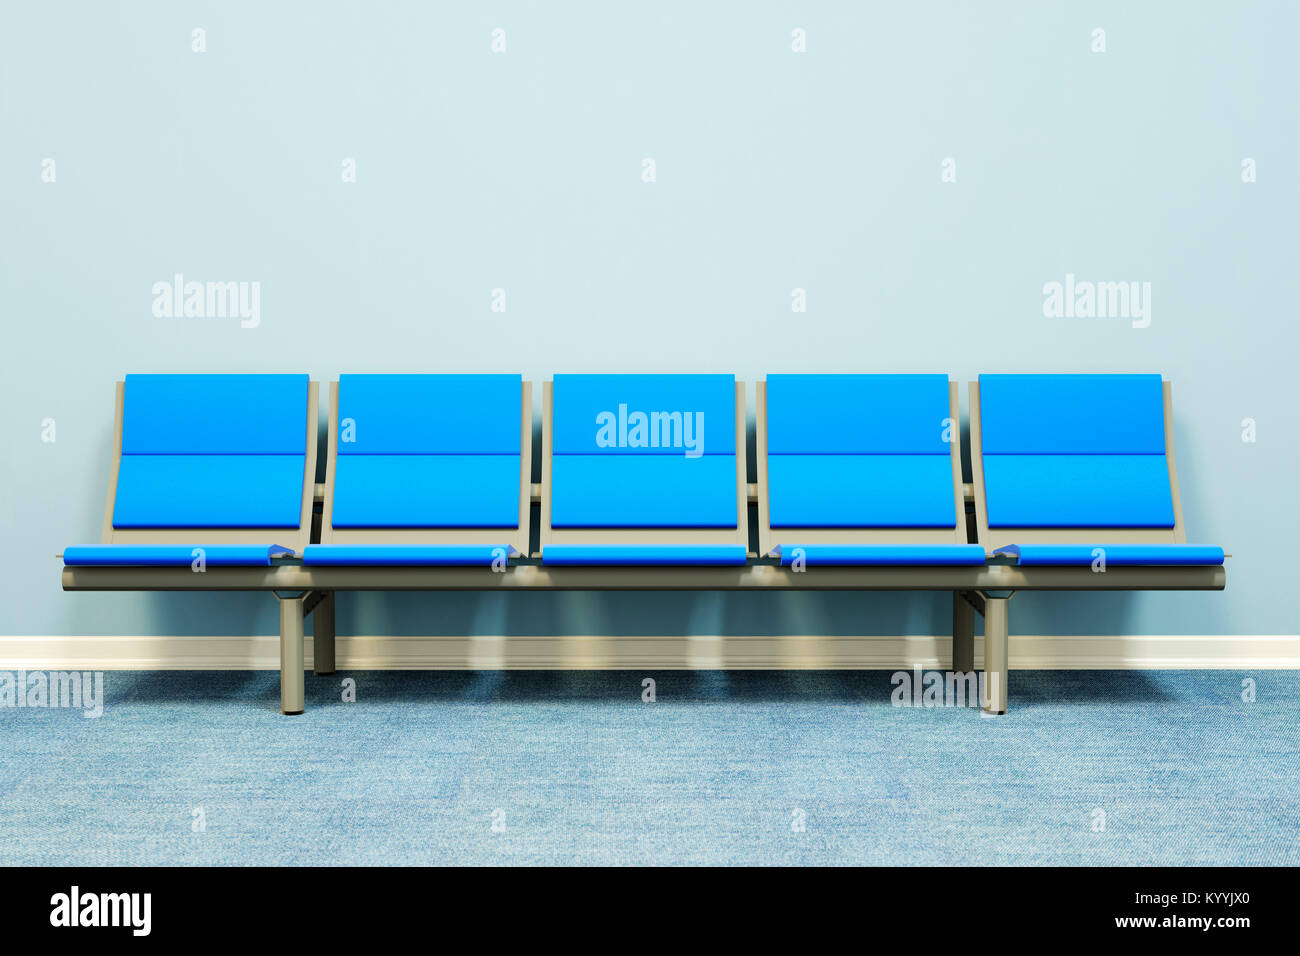 Five seats in a row against a wall in an empty room - waiting room, hospital, doctors, medical, job interview concept - Stock Image